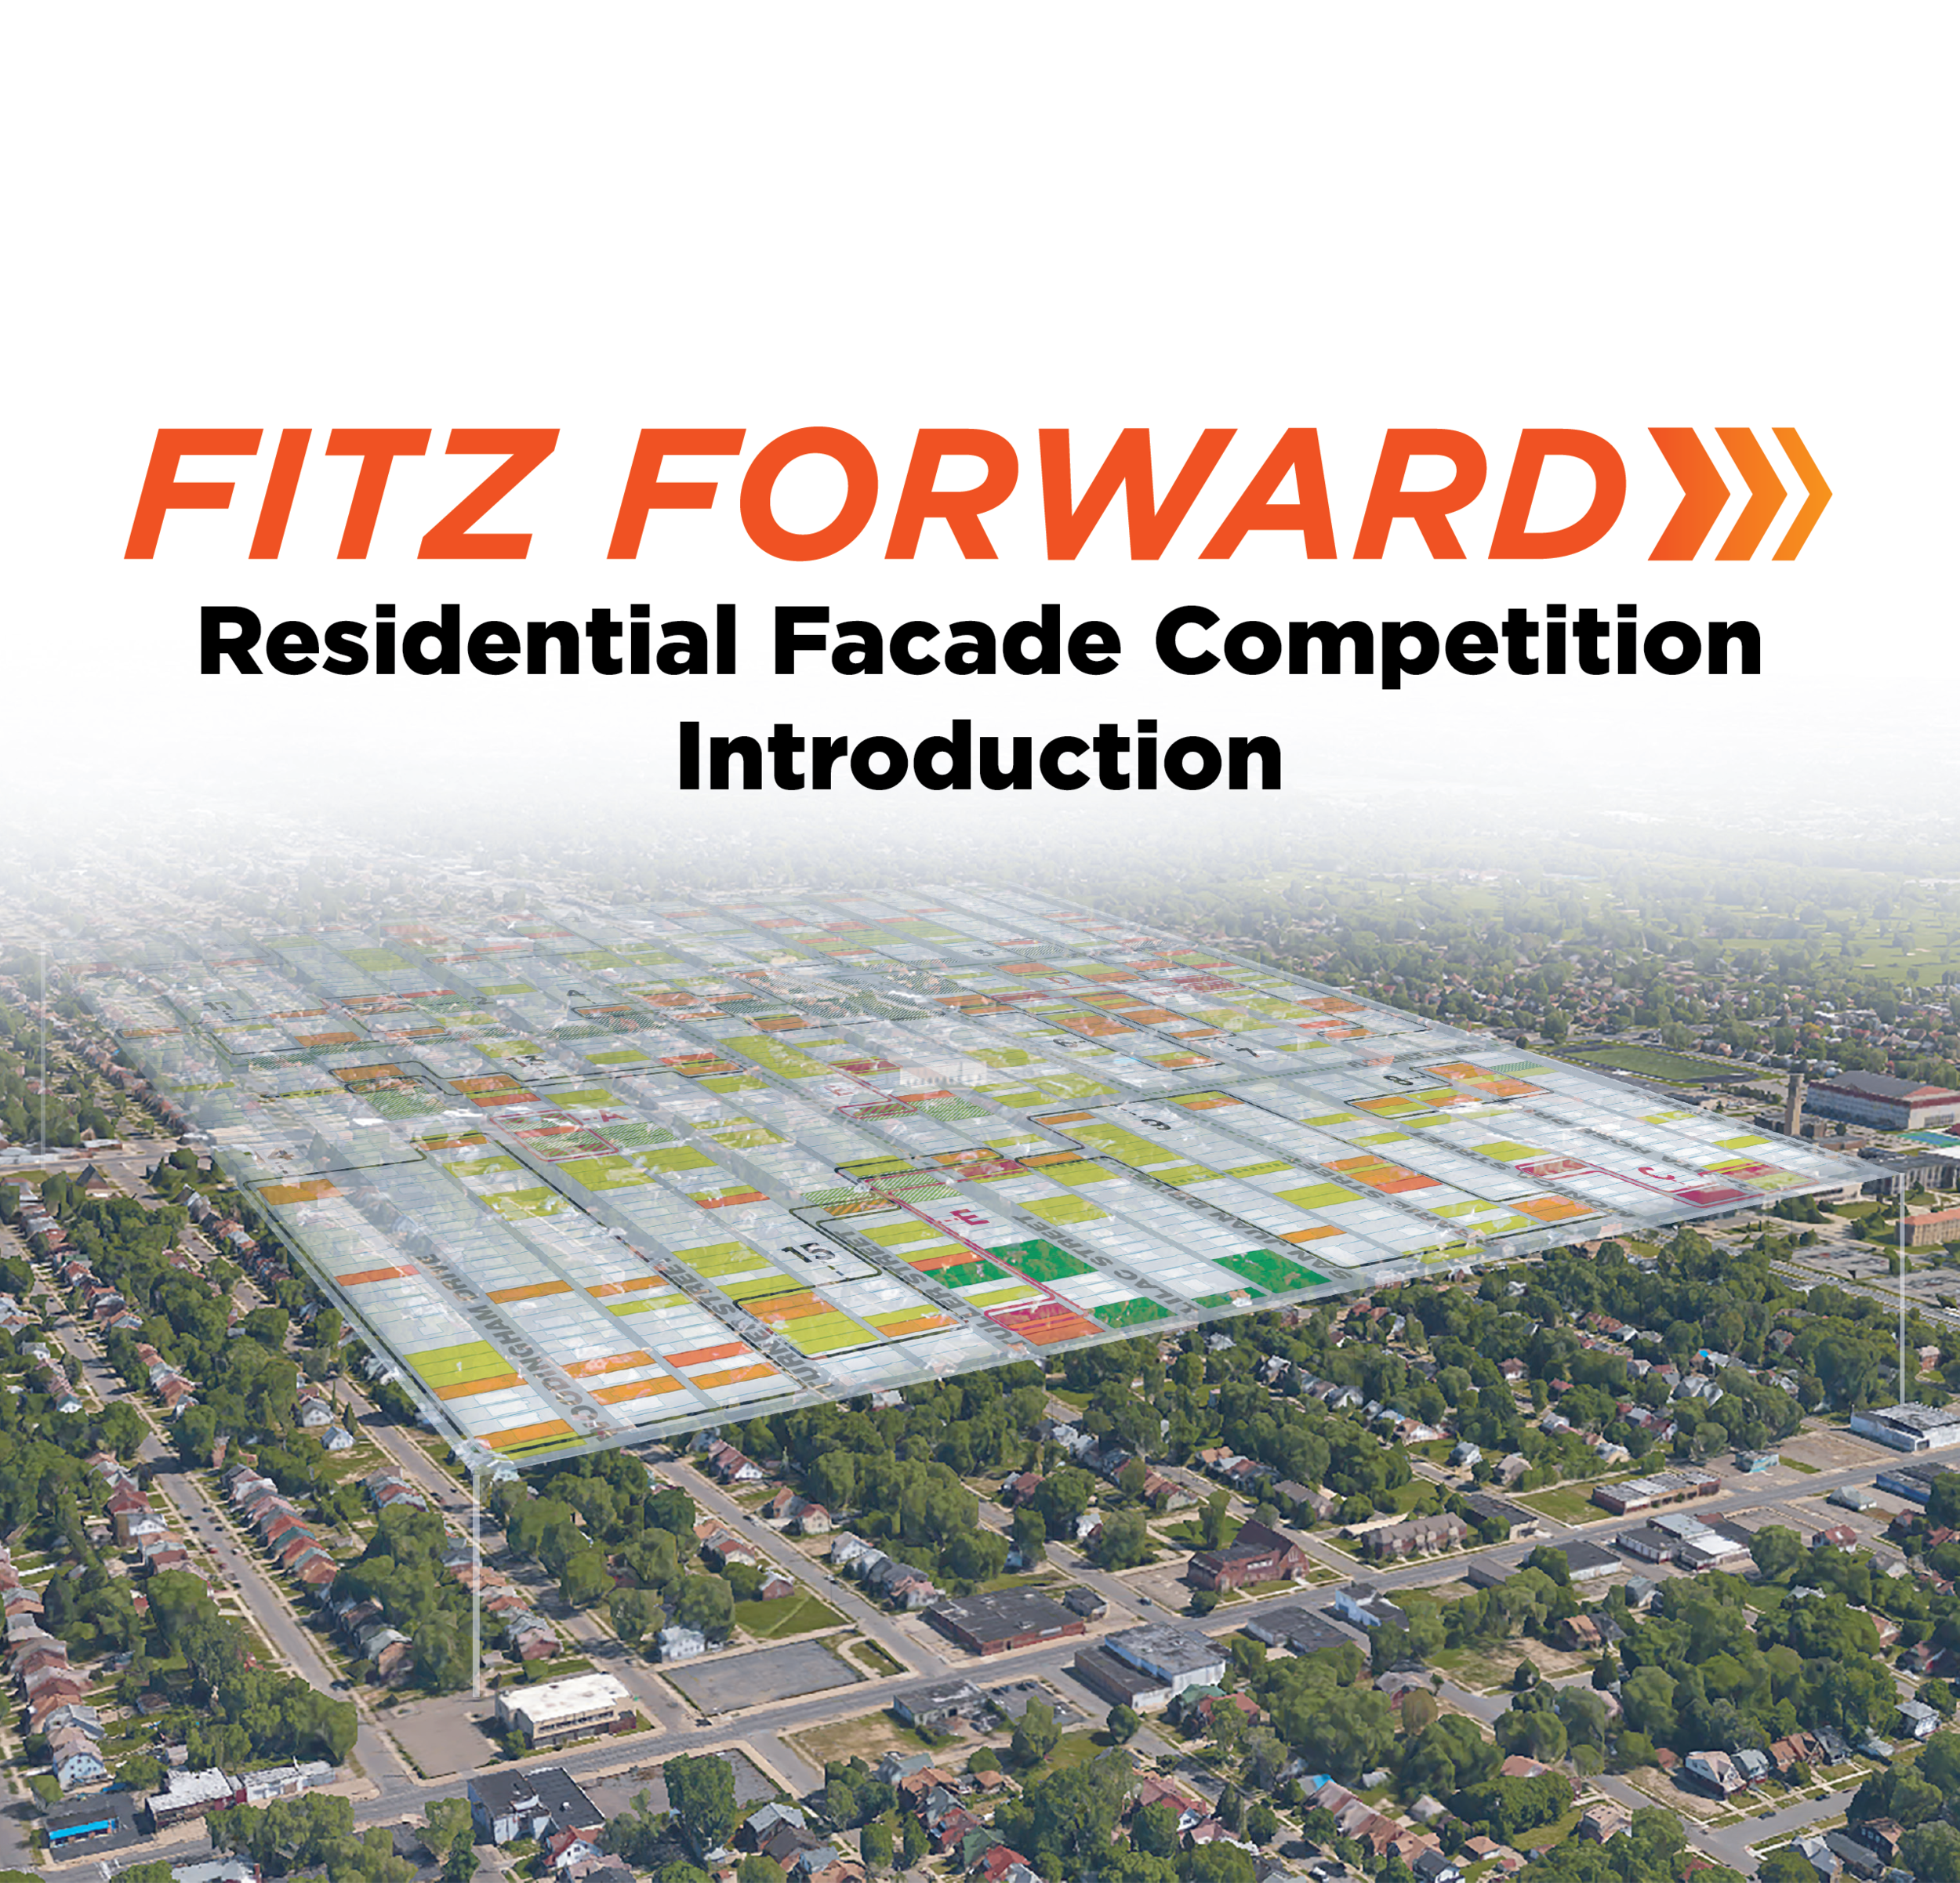 FitzForward_FacadeCompetition-Cover Image-01.png